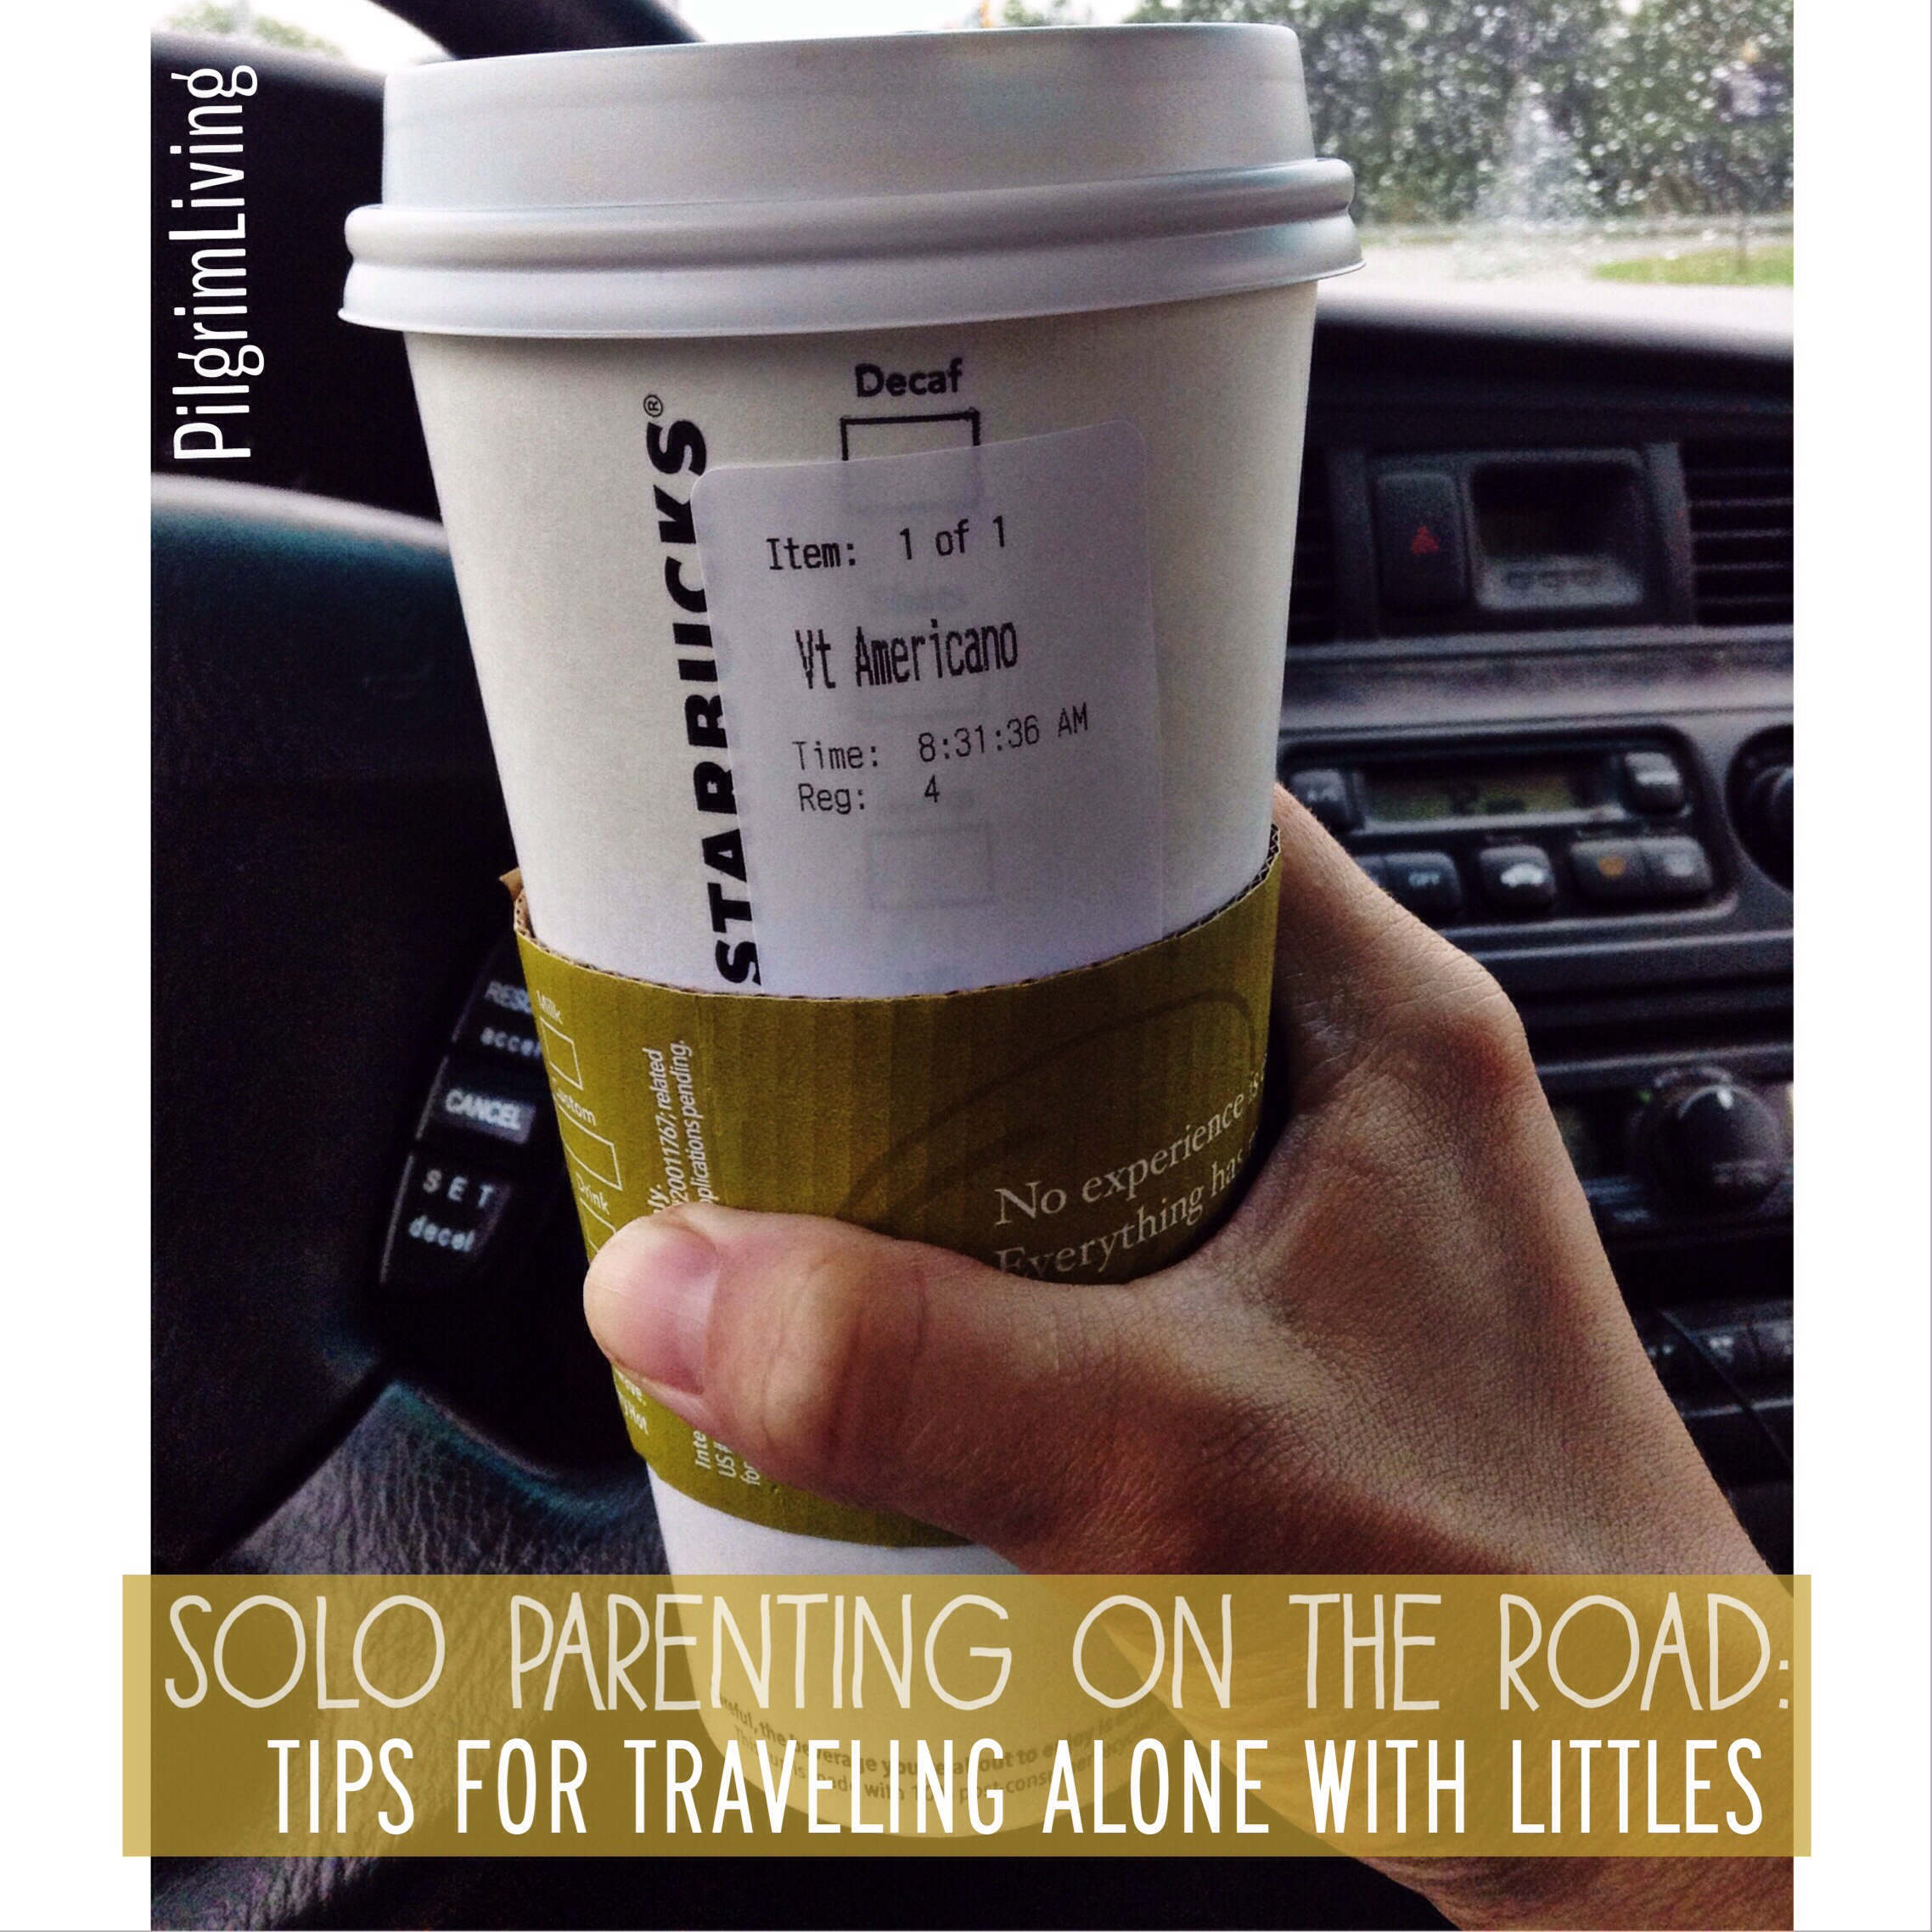 Solo Parenting On the Road: Tips for Traveling Alone With Littles